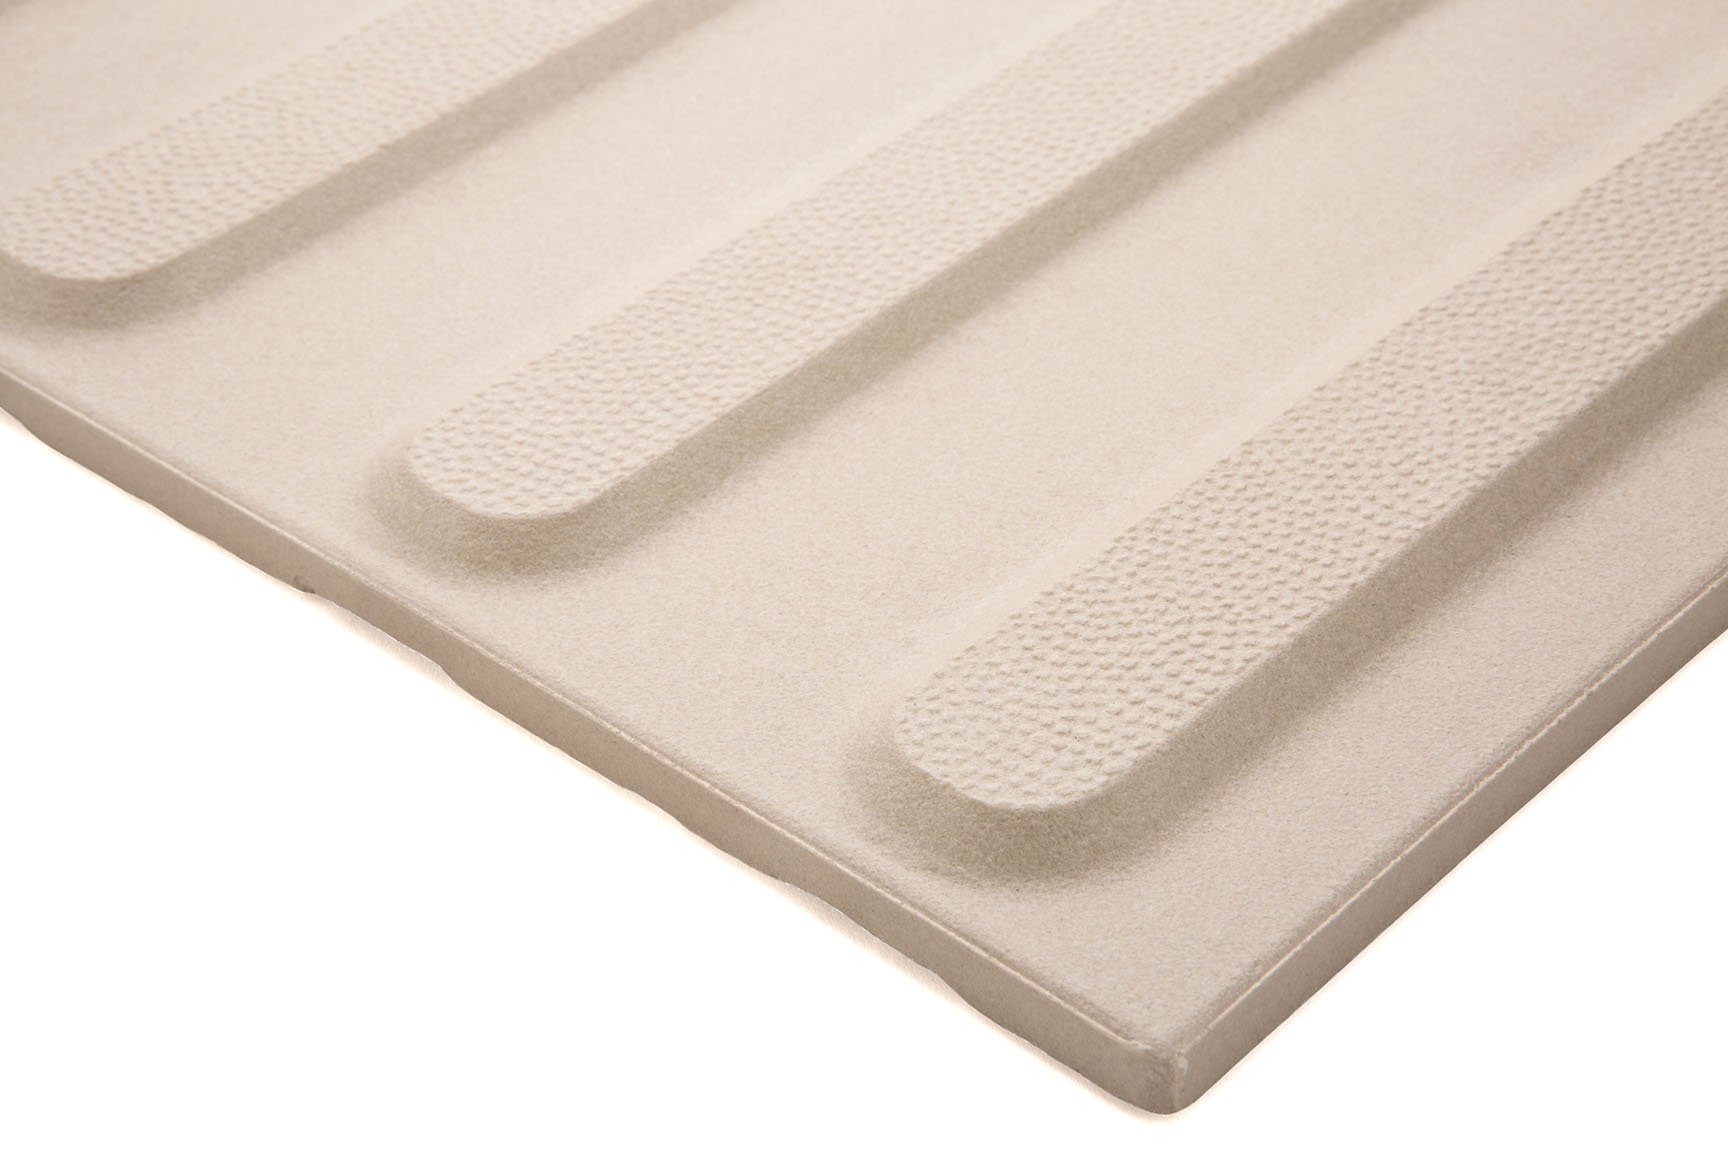 PTICD300 CERAMIC IVORY DIRECTIONAL TACTILE 300X300